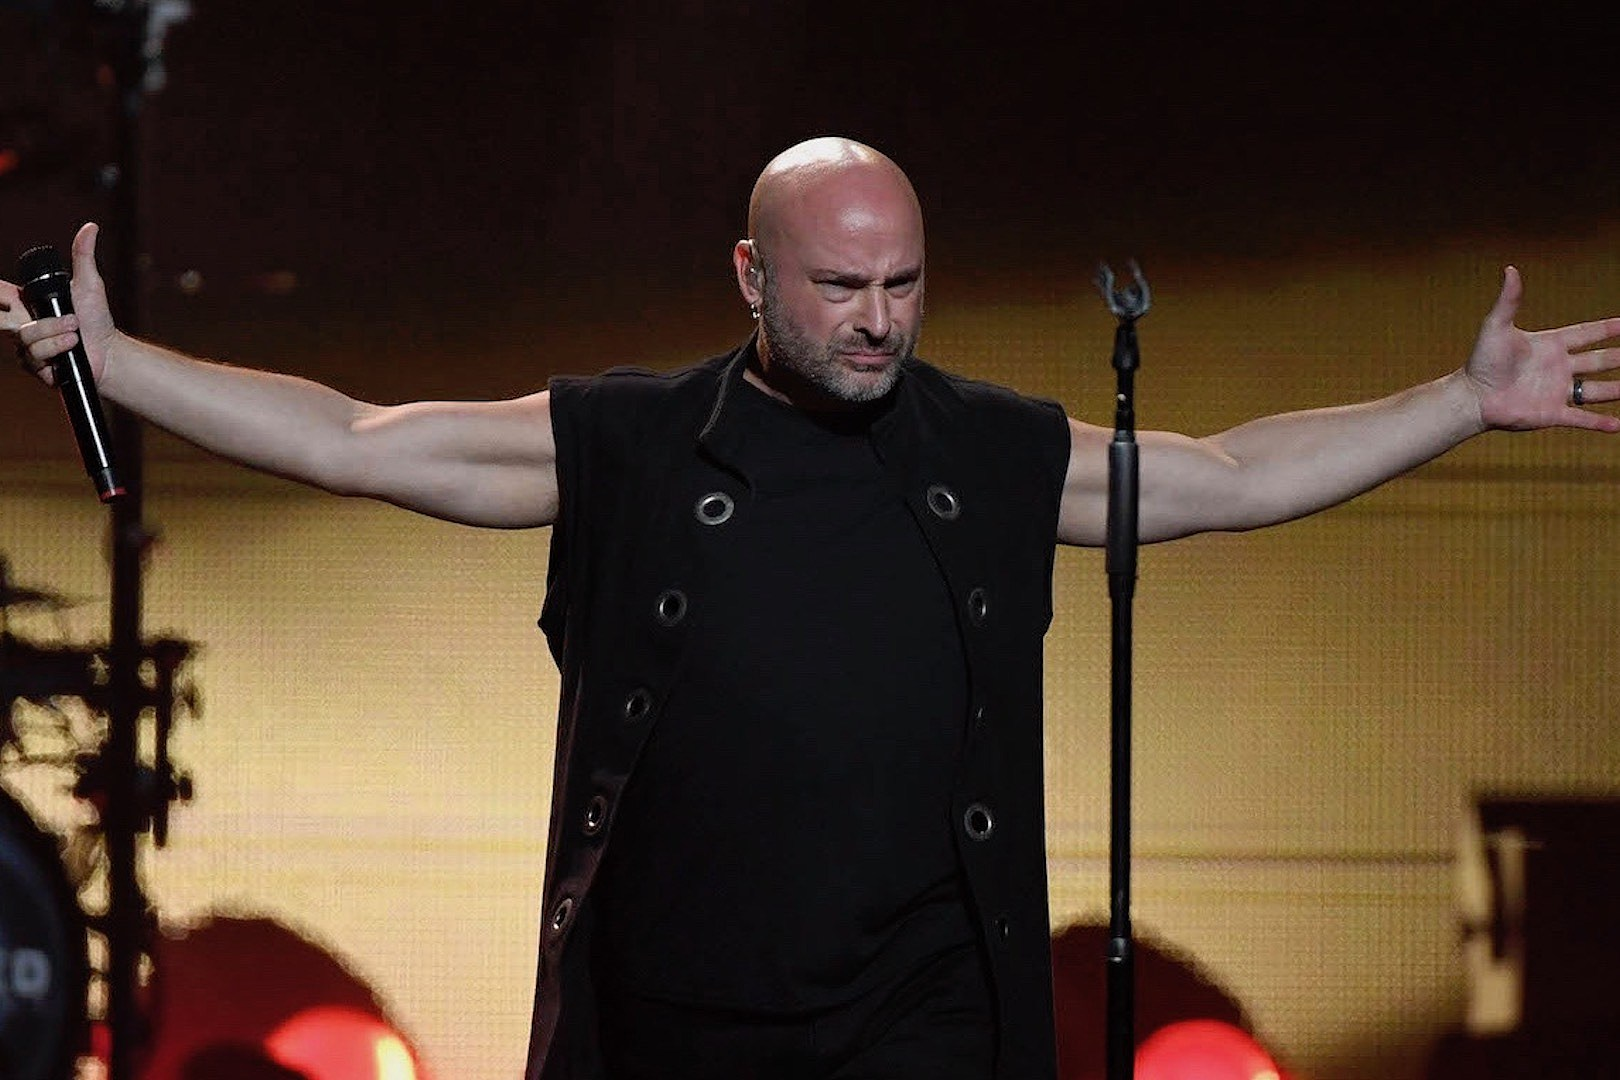 The Interrogation of Disturbed's David Draiman